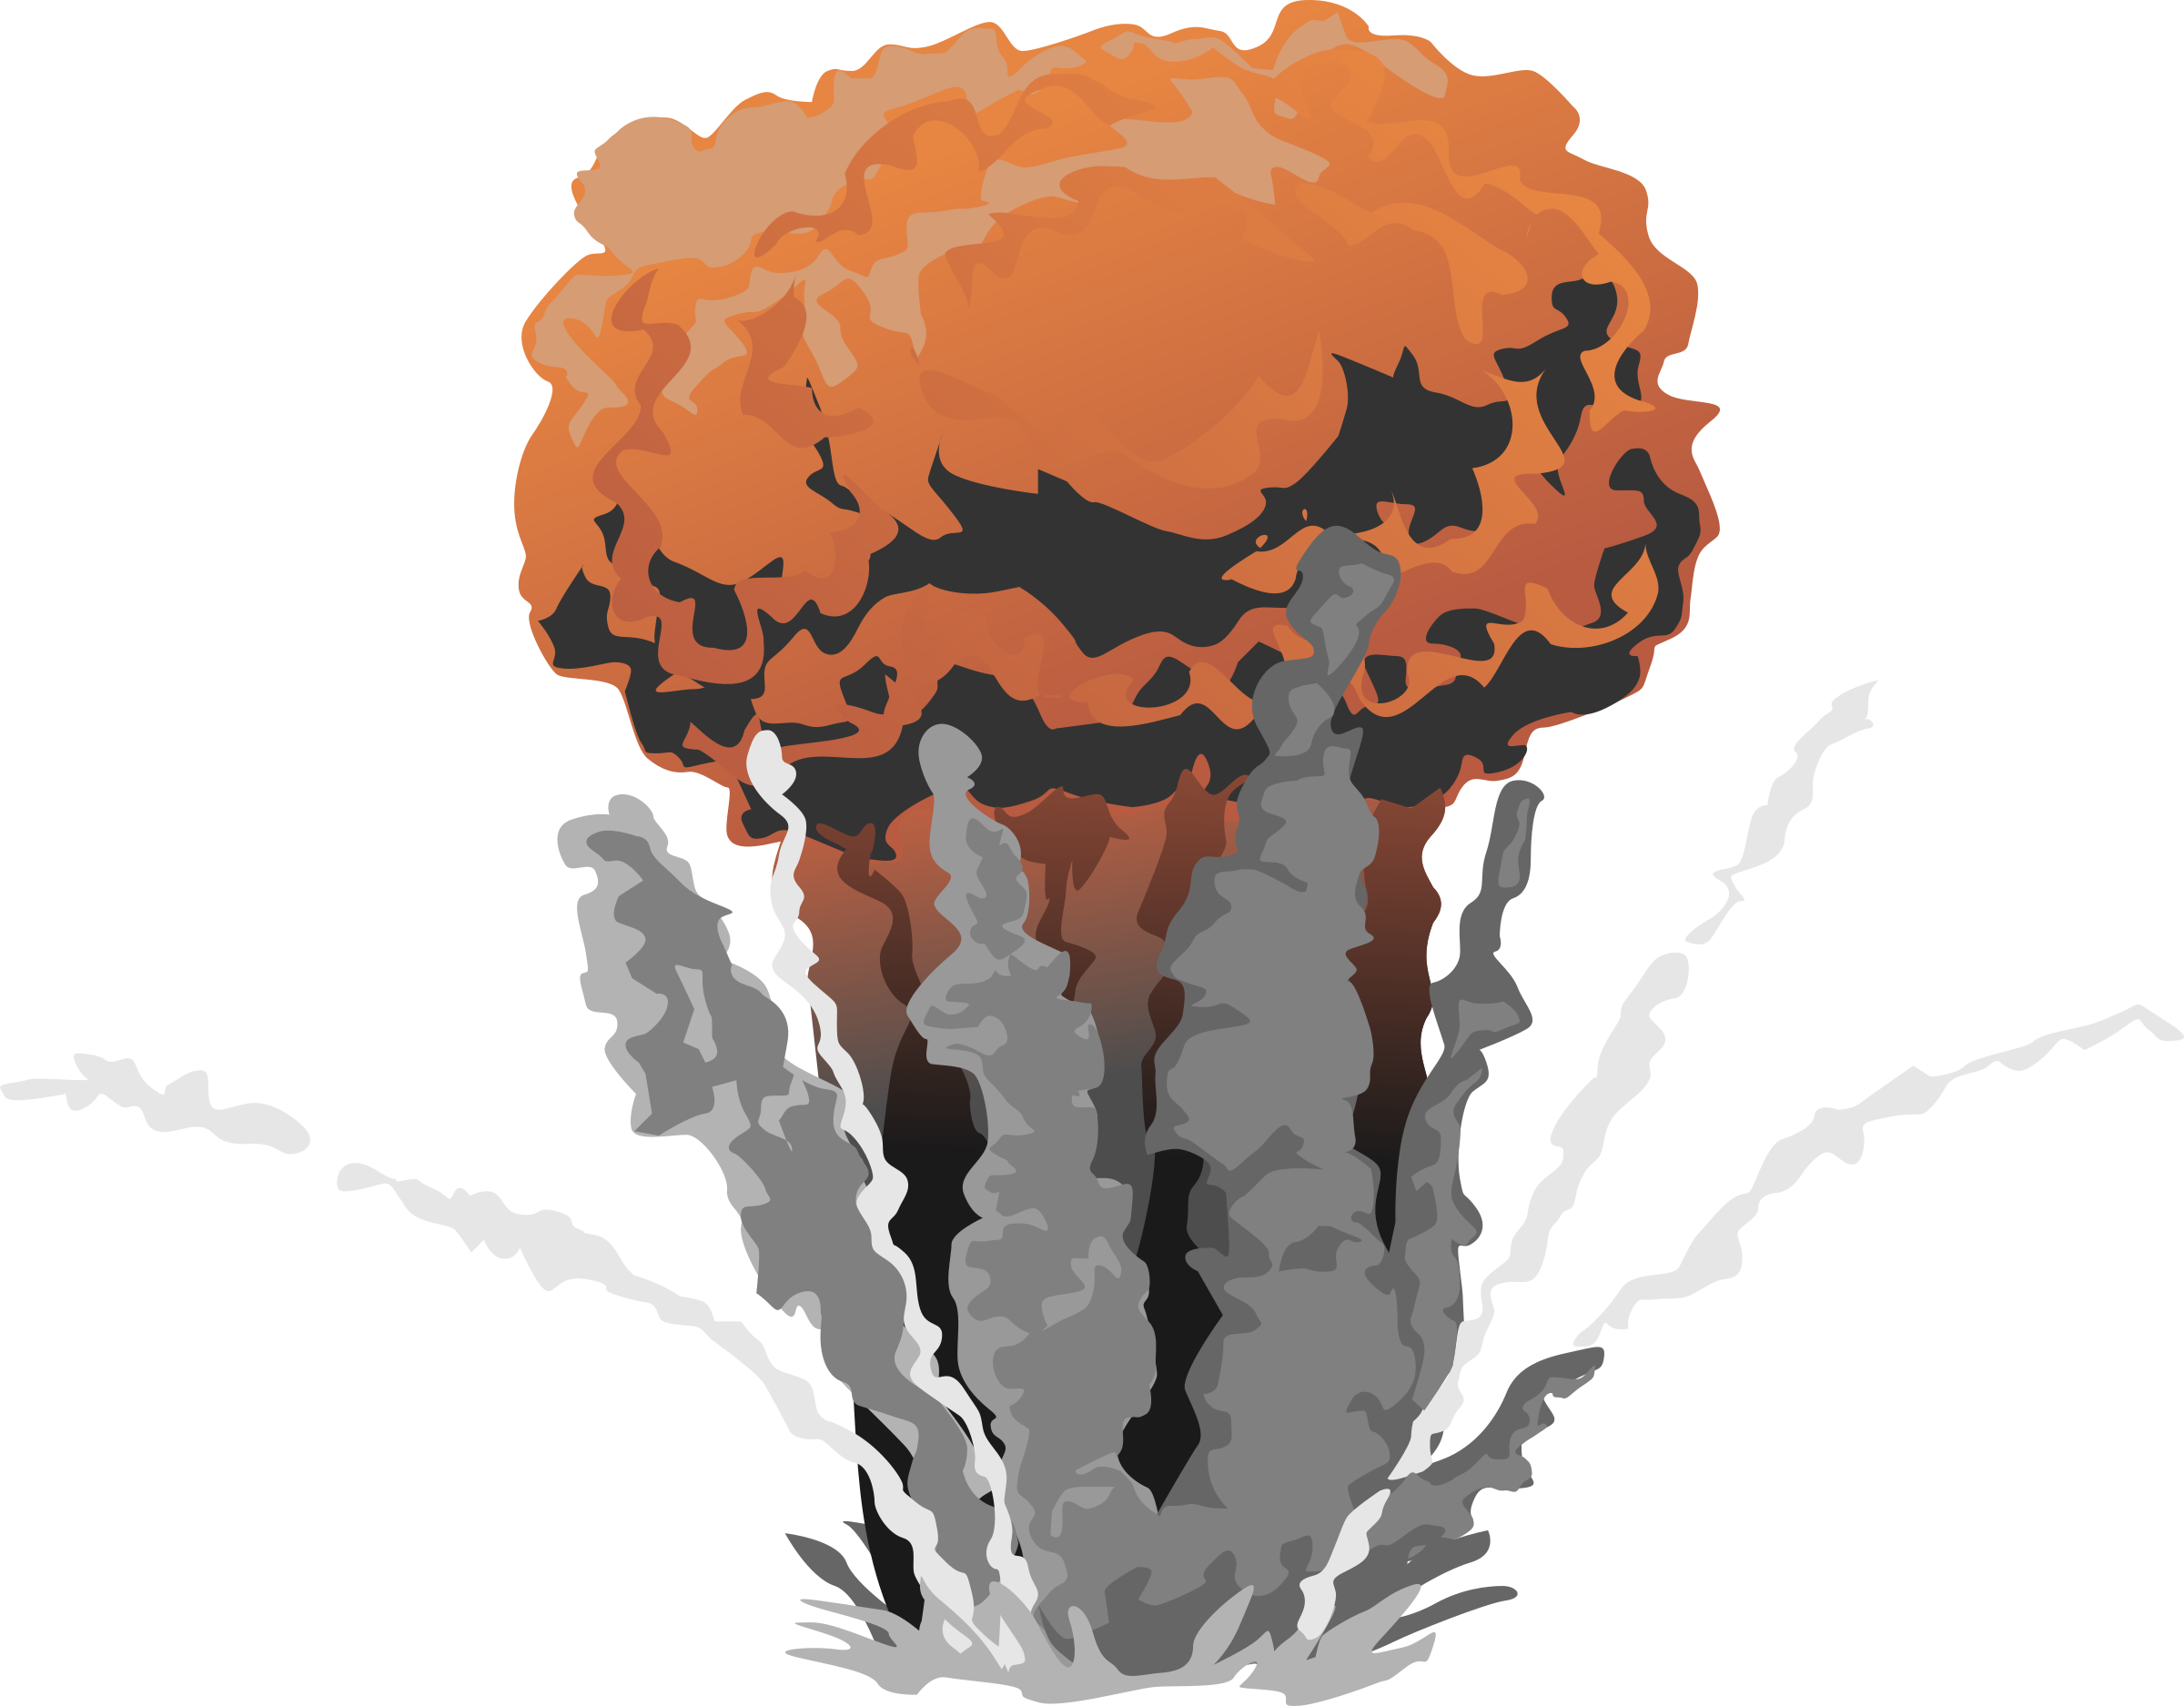 Planet clipart explosion. Png image purepng free